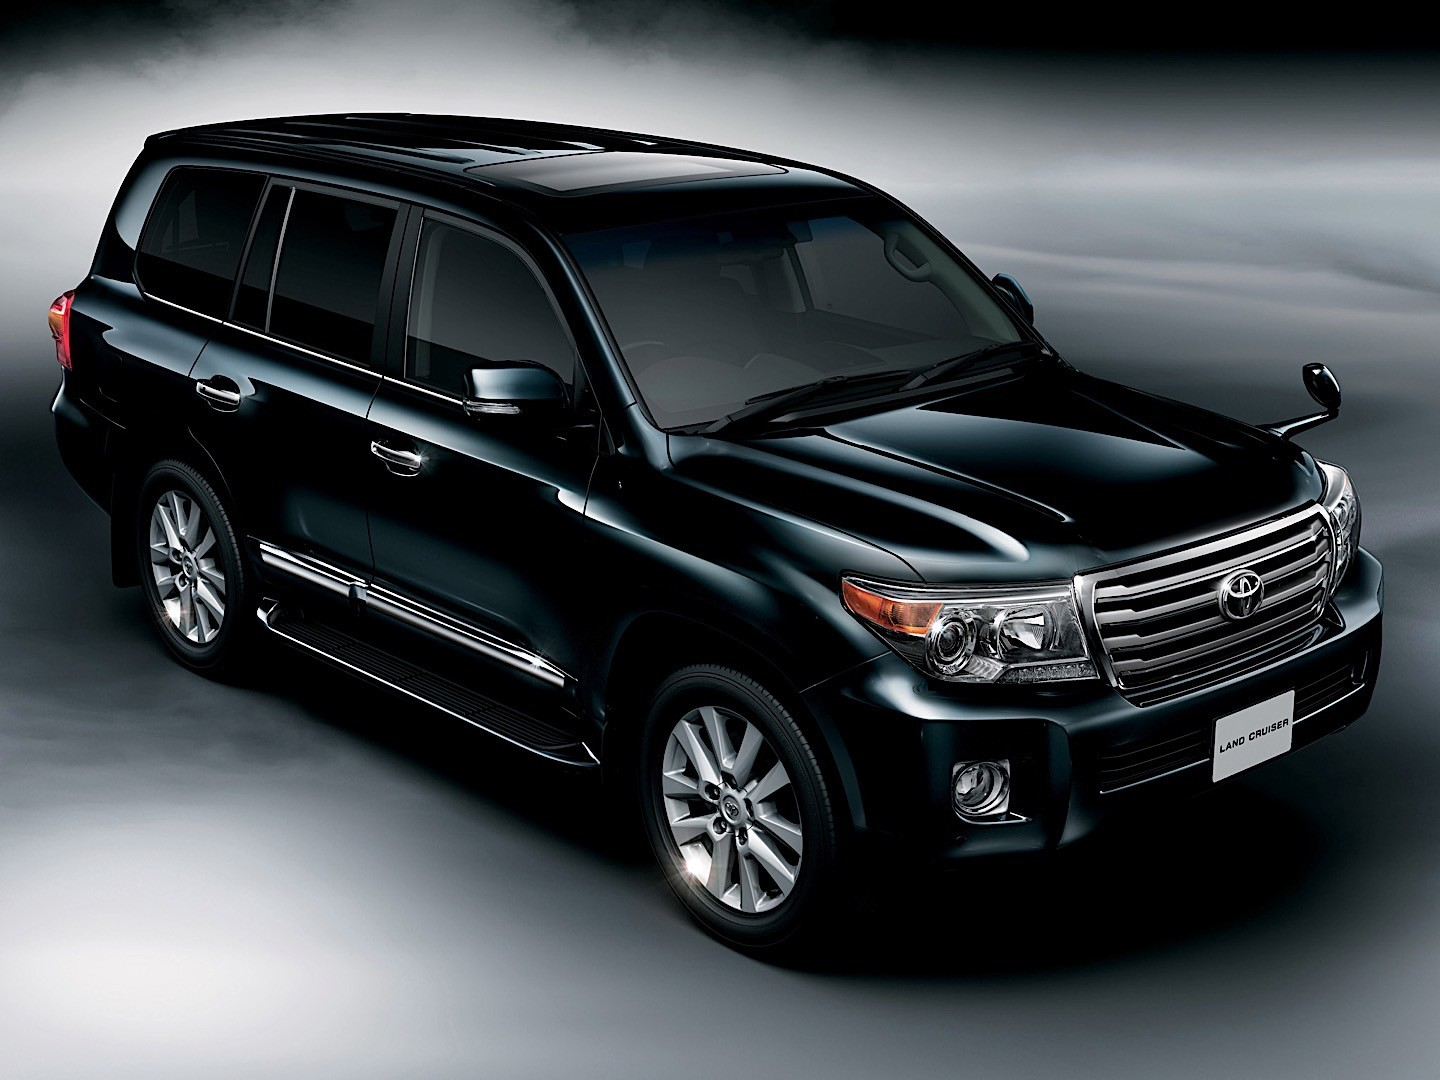 2015 Toyota Land Cruiser Gxr